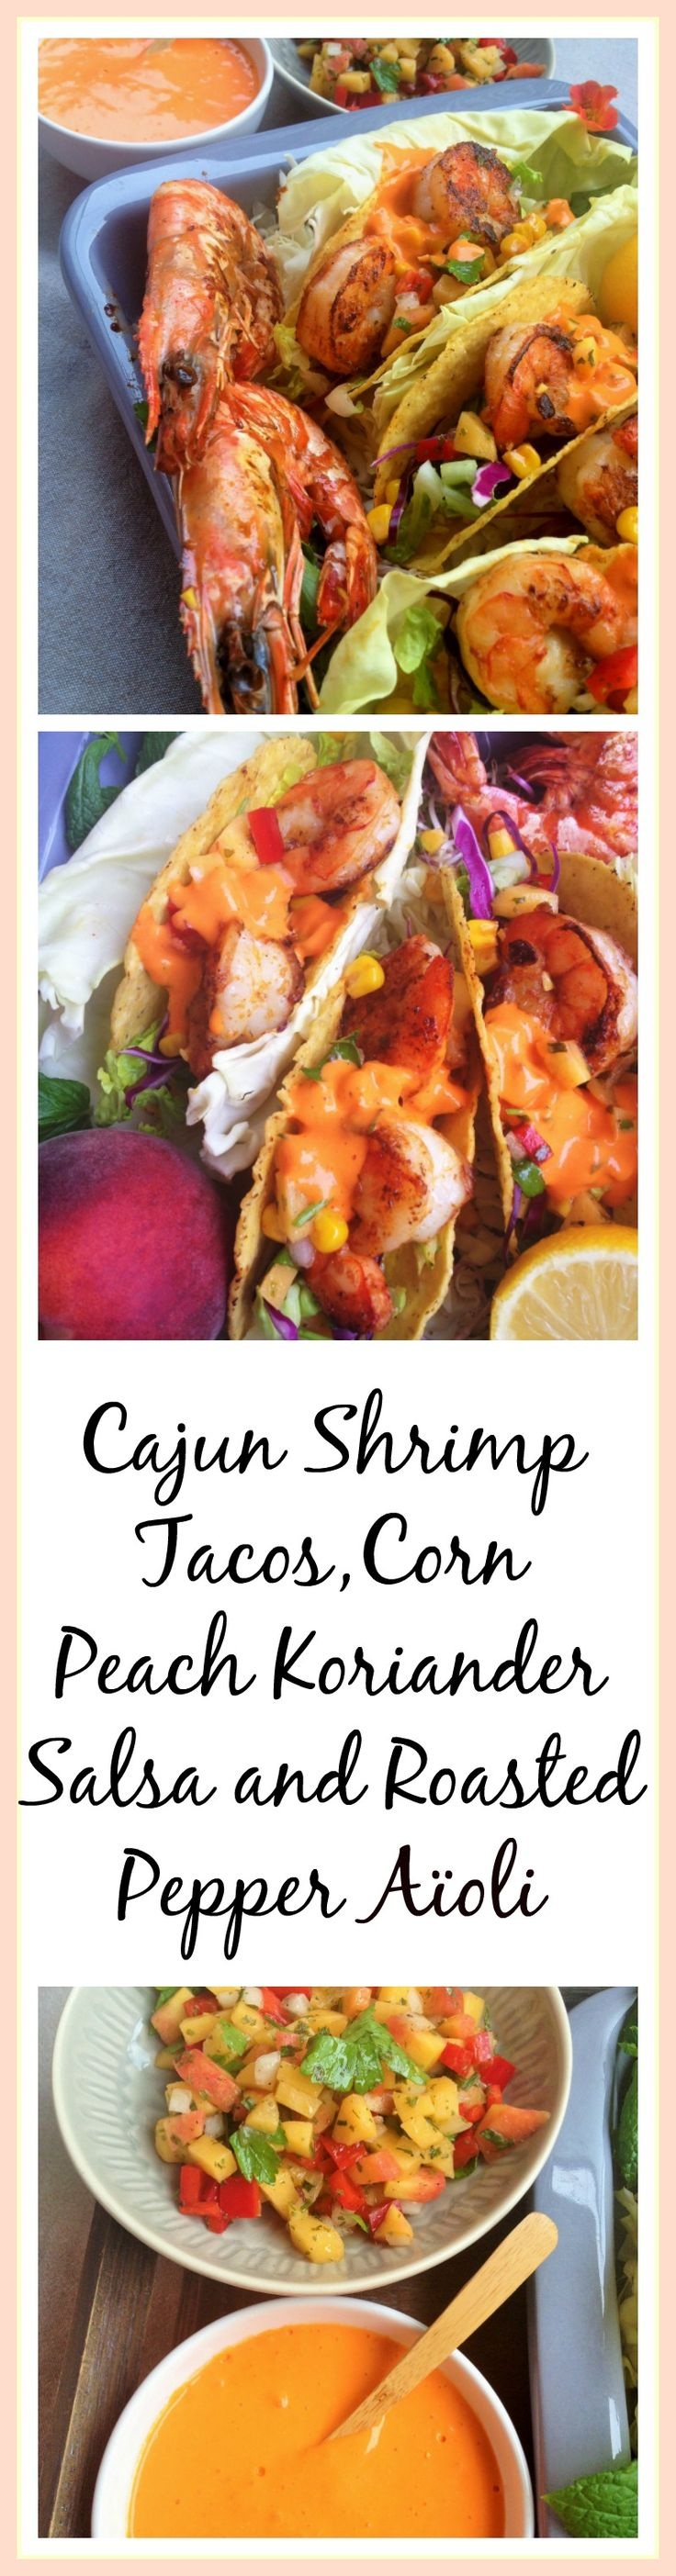 Cajun Jumbo Shrimp Tacos with Corn, a Peach & Koriander Salsa and Roasted Pepper Aïoli. Do I need to say more? This is almost to good to be true. Such a great recipe. thecookingspoon.org